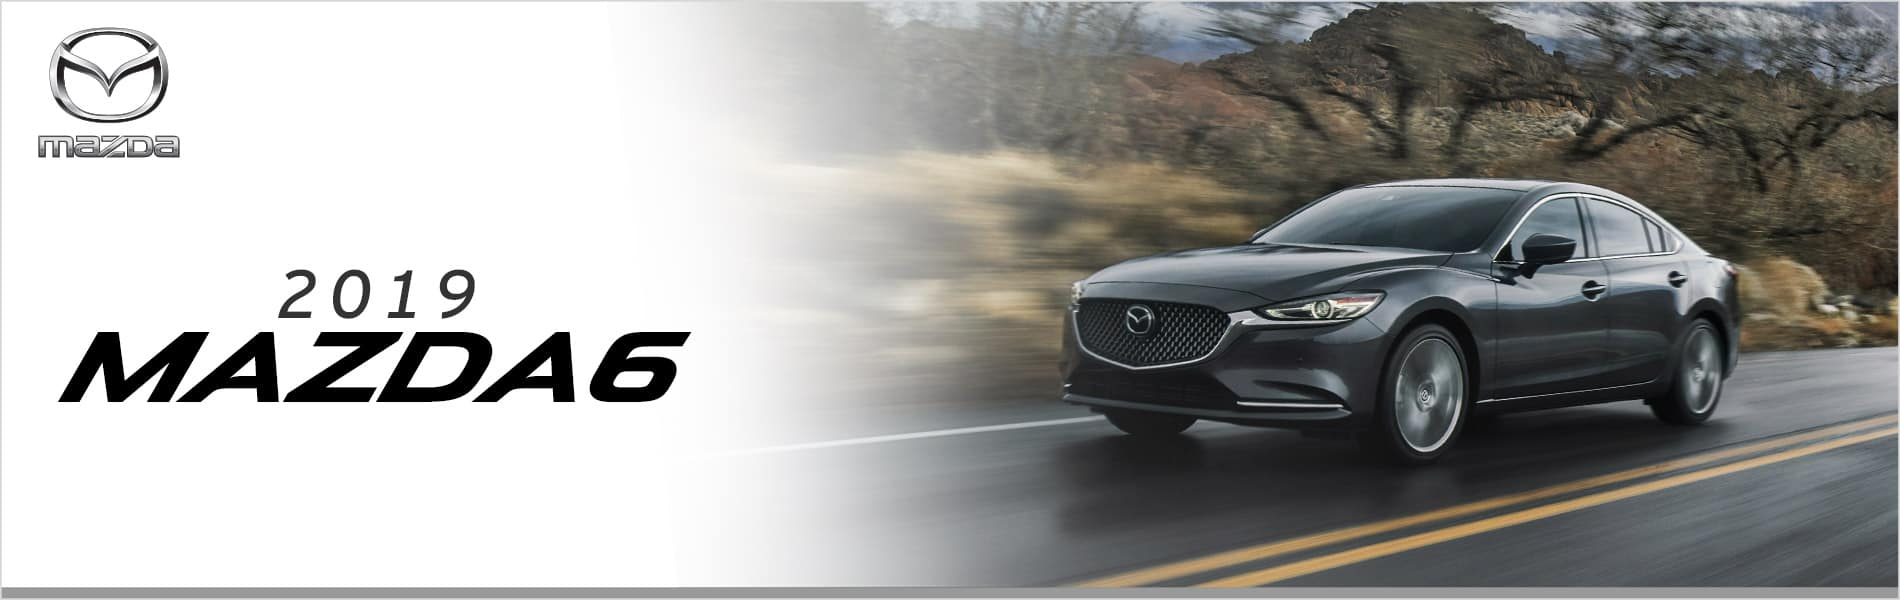 2019 Mazda6 at Mazda of Bedford in Cleveland, Ohio